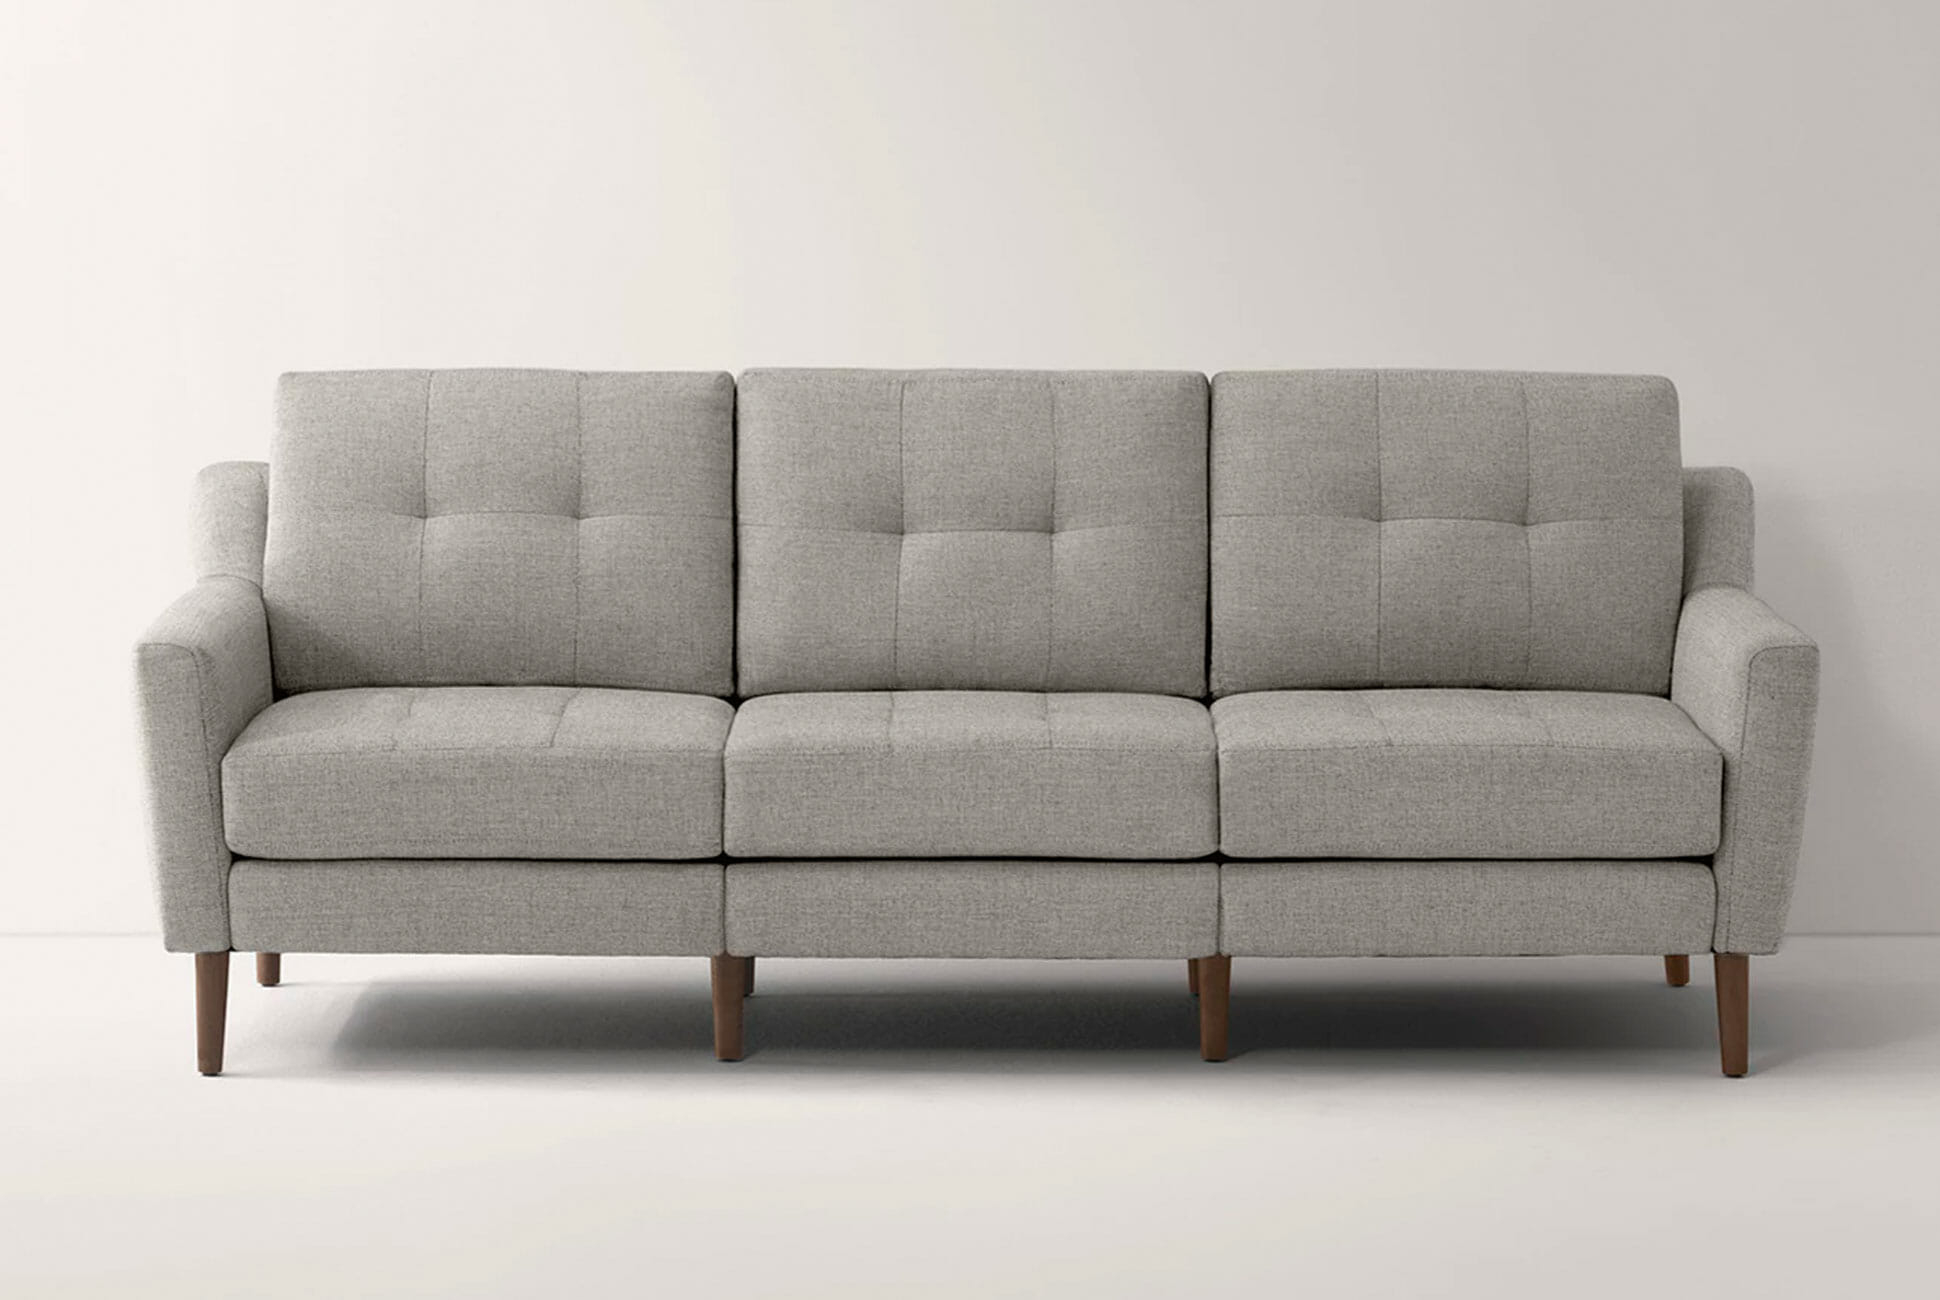 The 16 Best Sofas And Couches You Can Buy In 2019 Gear Patrol within Best Place To Buy Living Room Sets